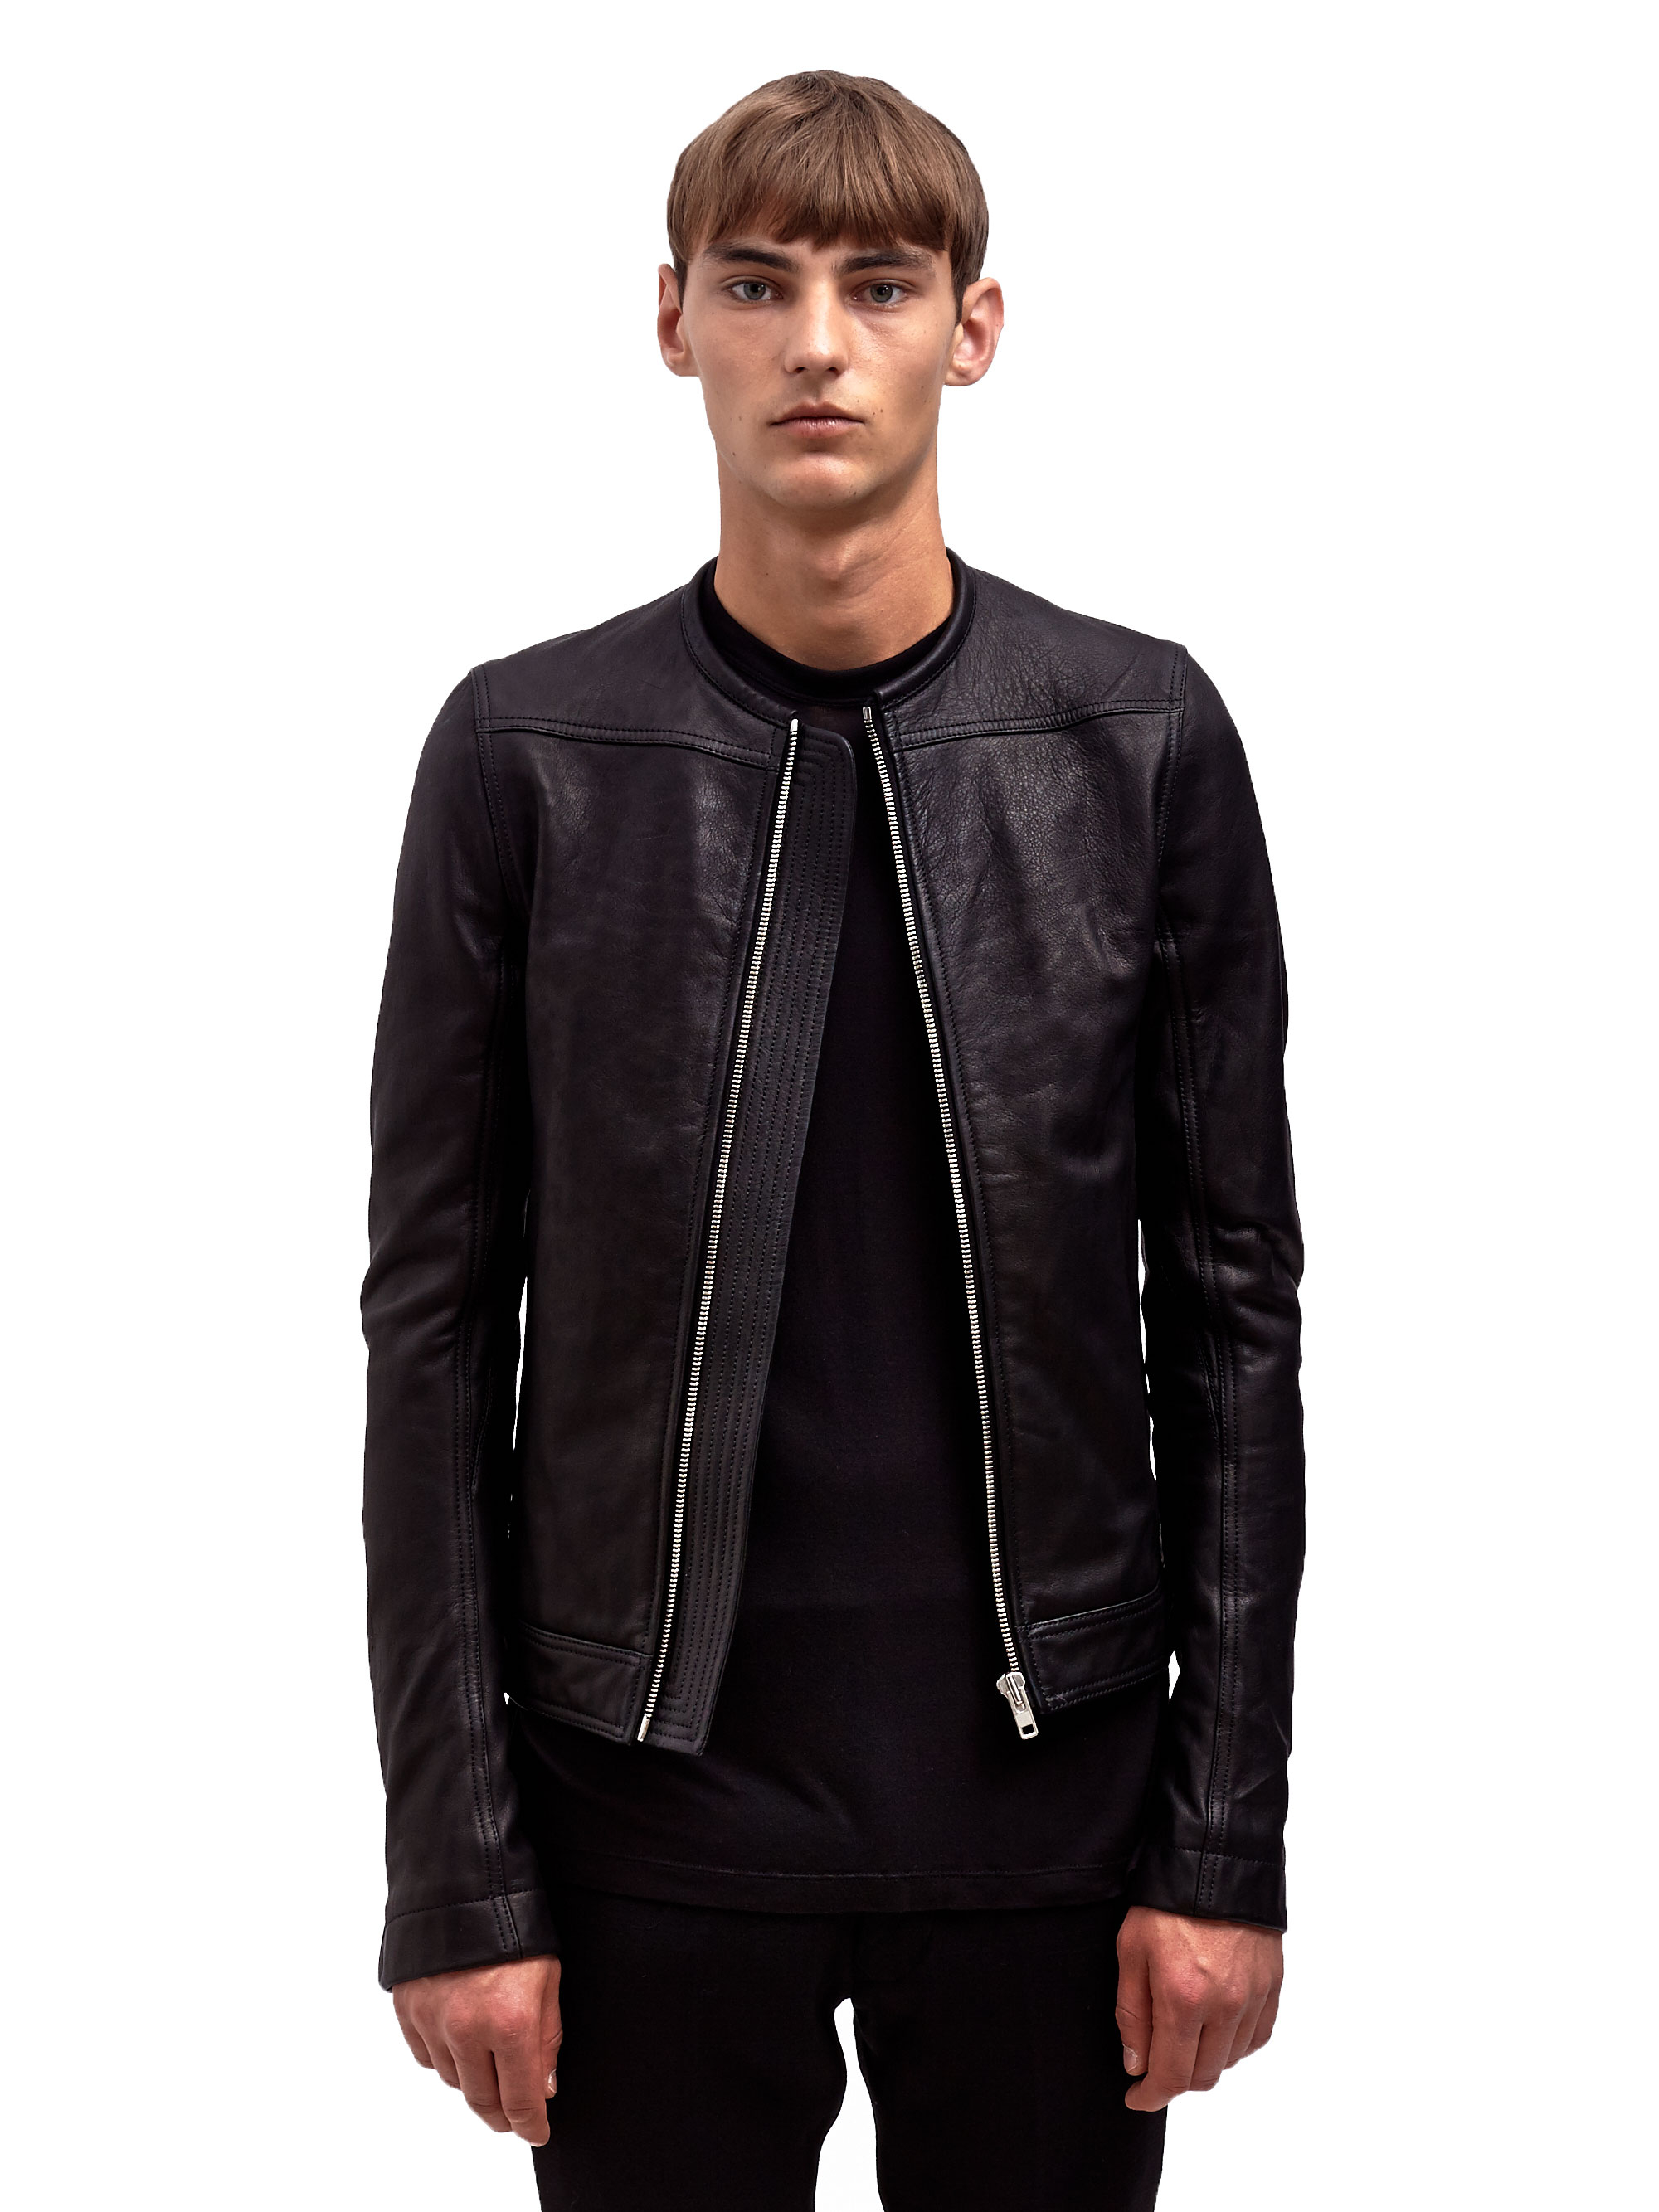 Lyst - Rick owens Mens Leather Biker Jacket in Black for Men